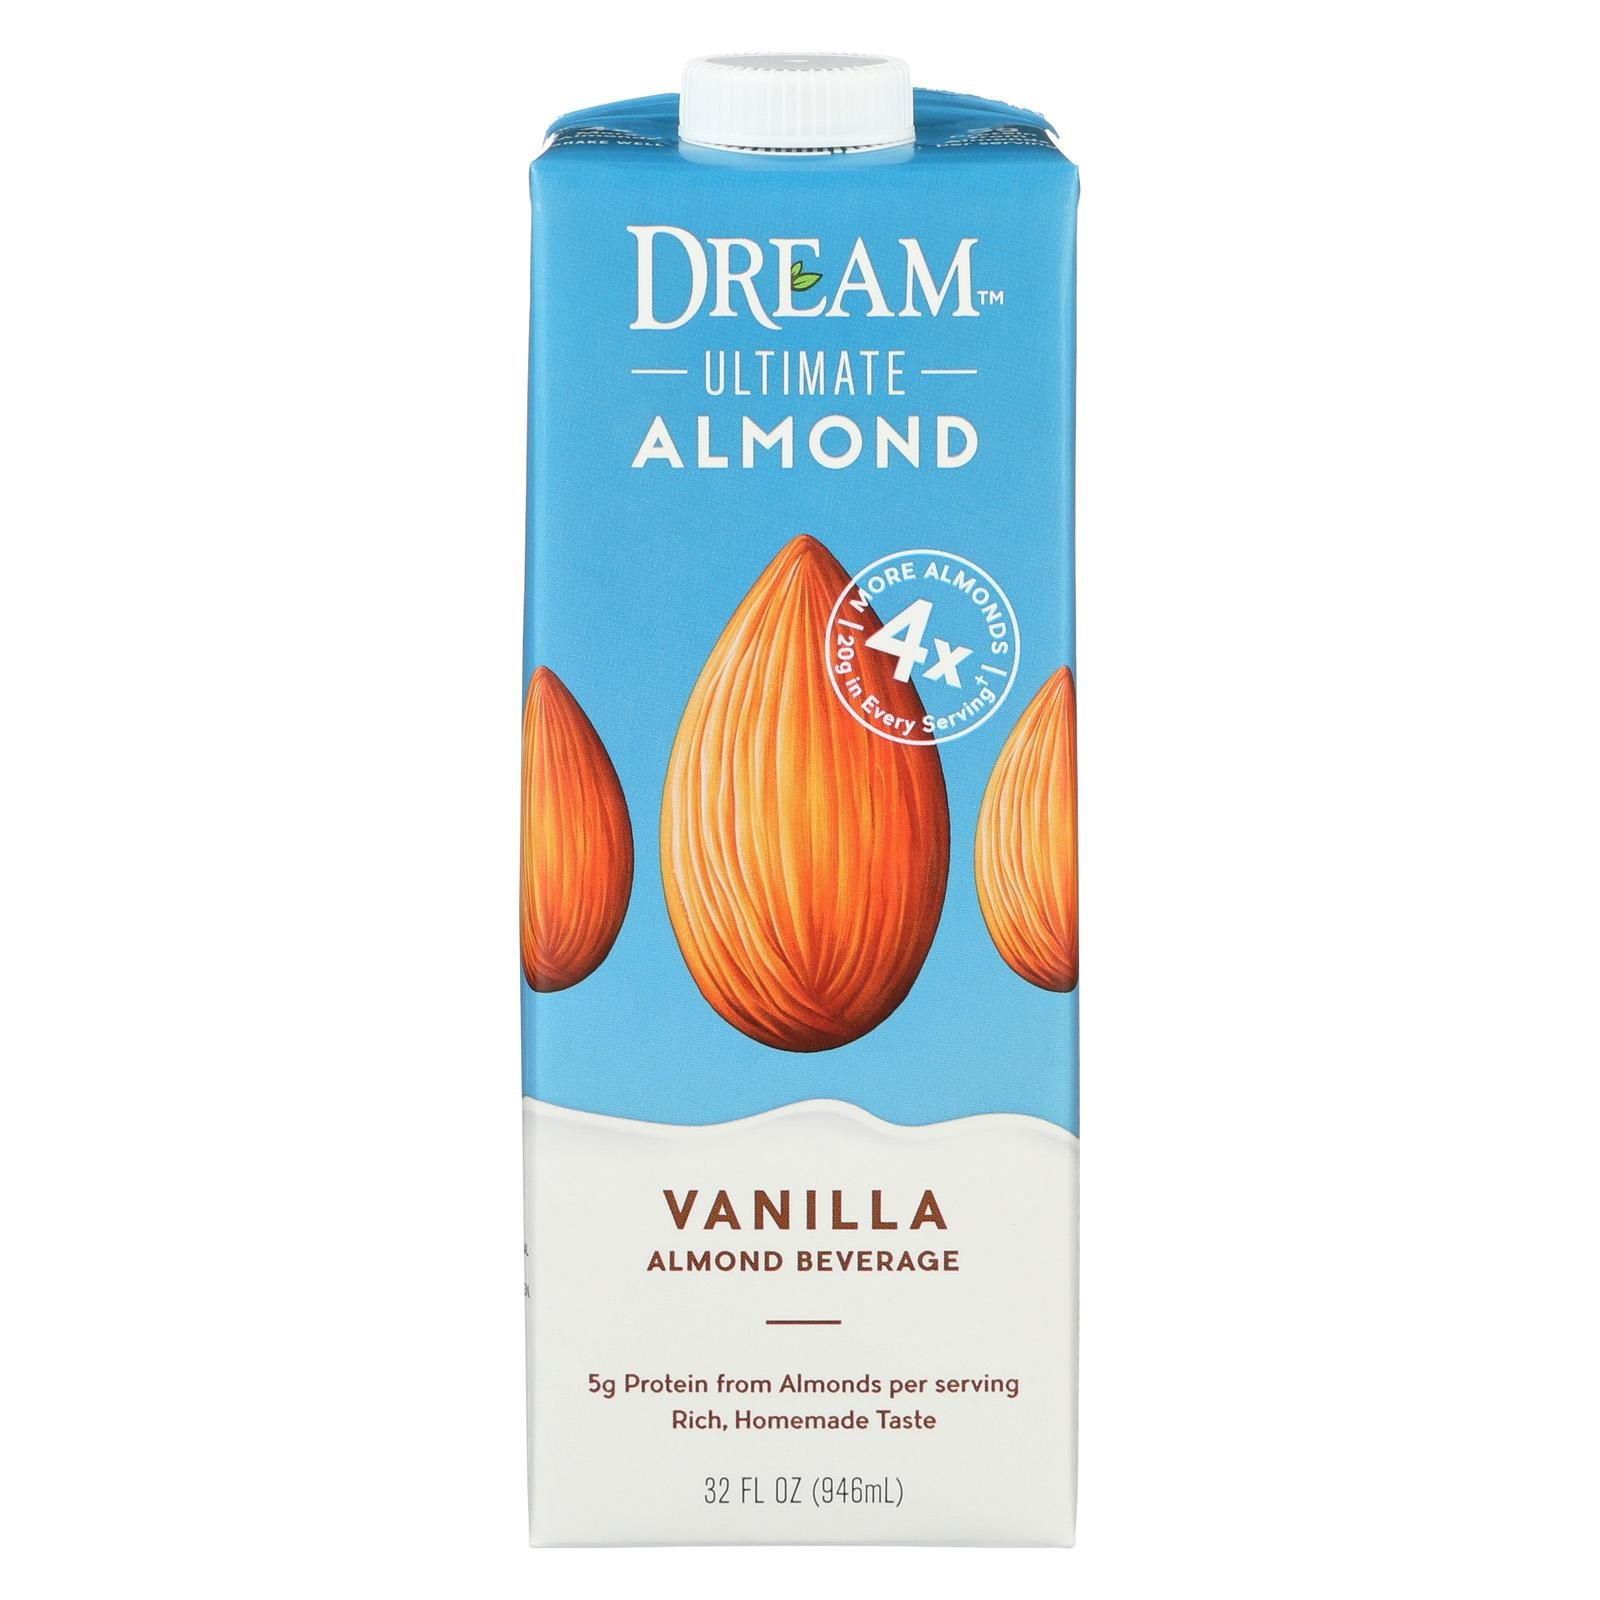 Dream Bev Almond Vanilla Ultimate, 32 oz